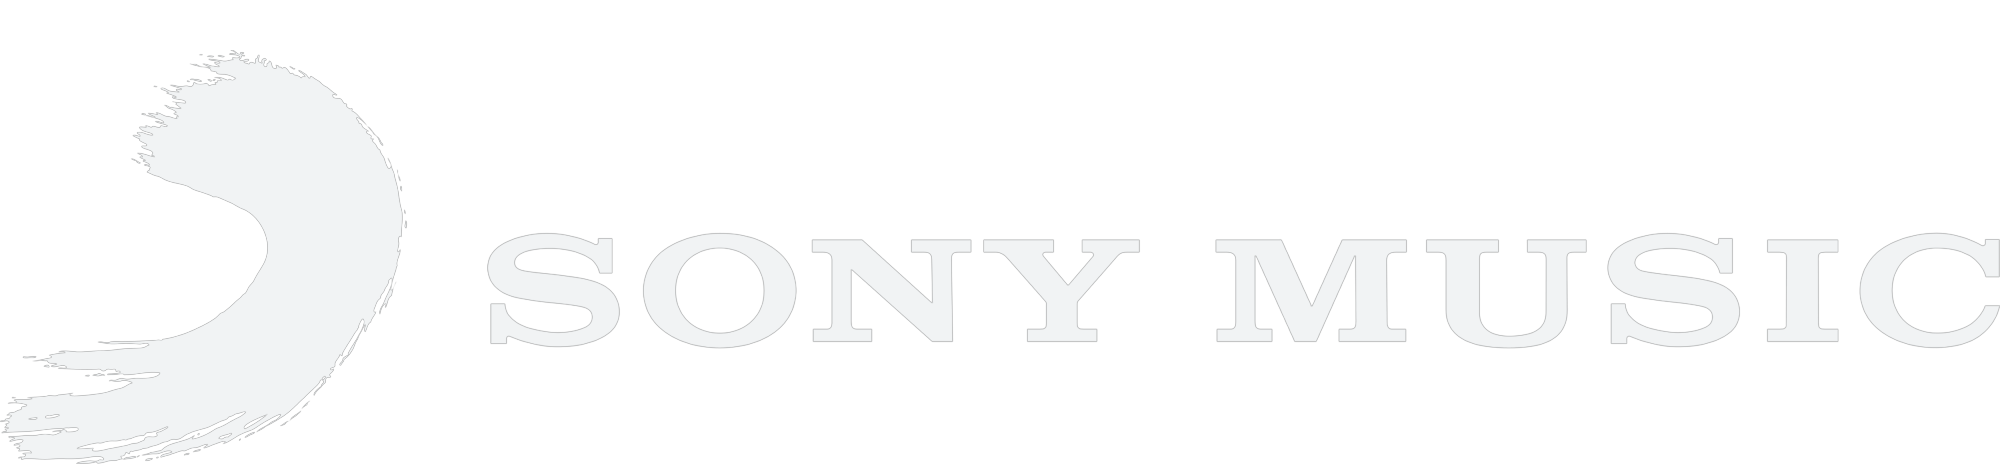 Sony_Music_Entertainment_Print_Logo_(2009)_II-1